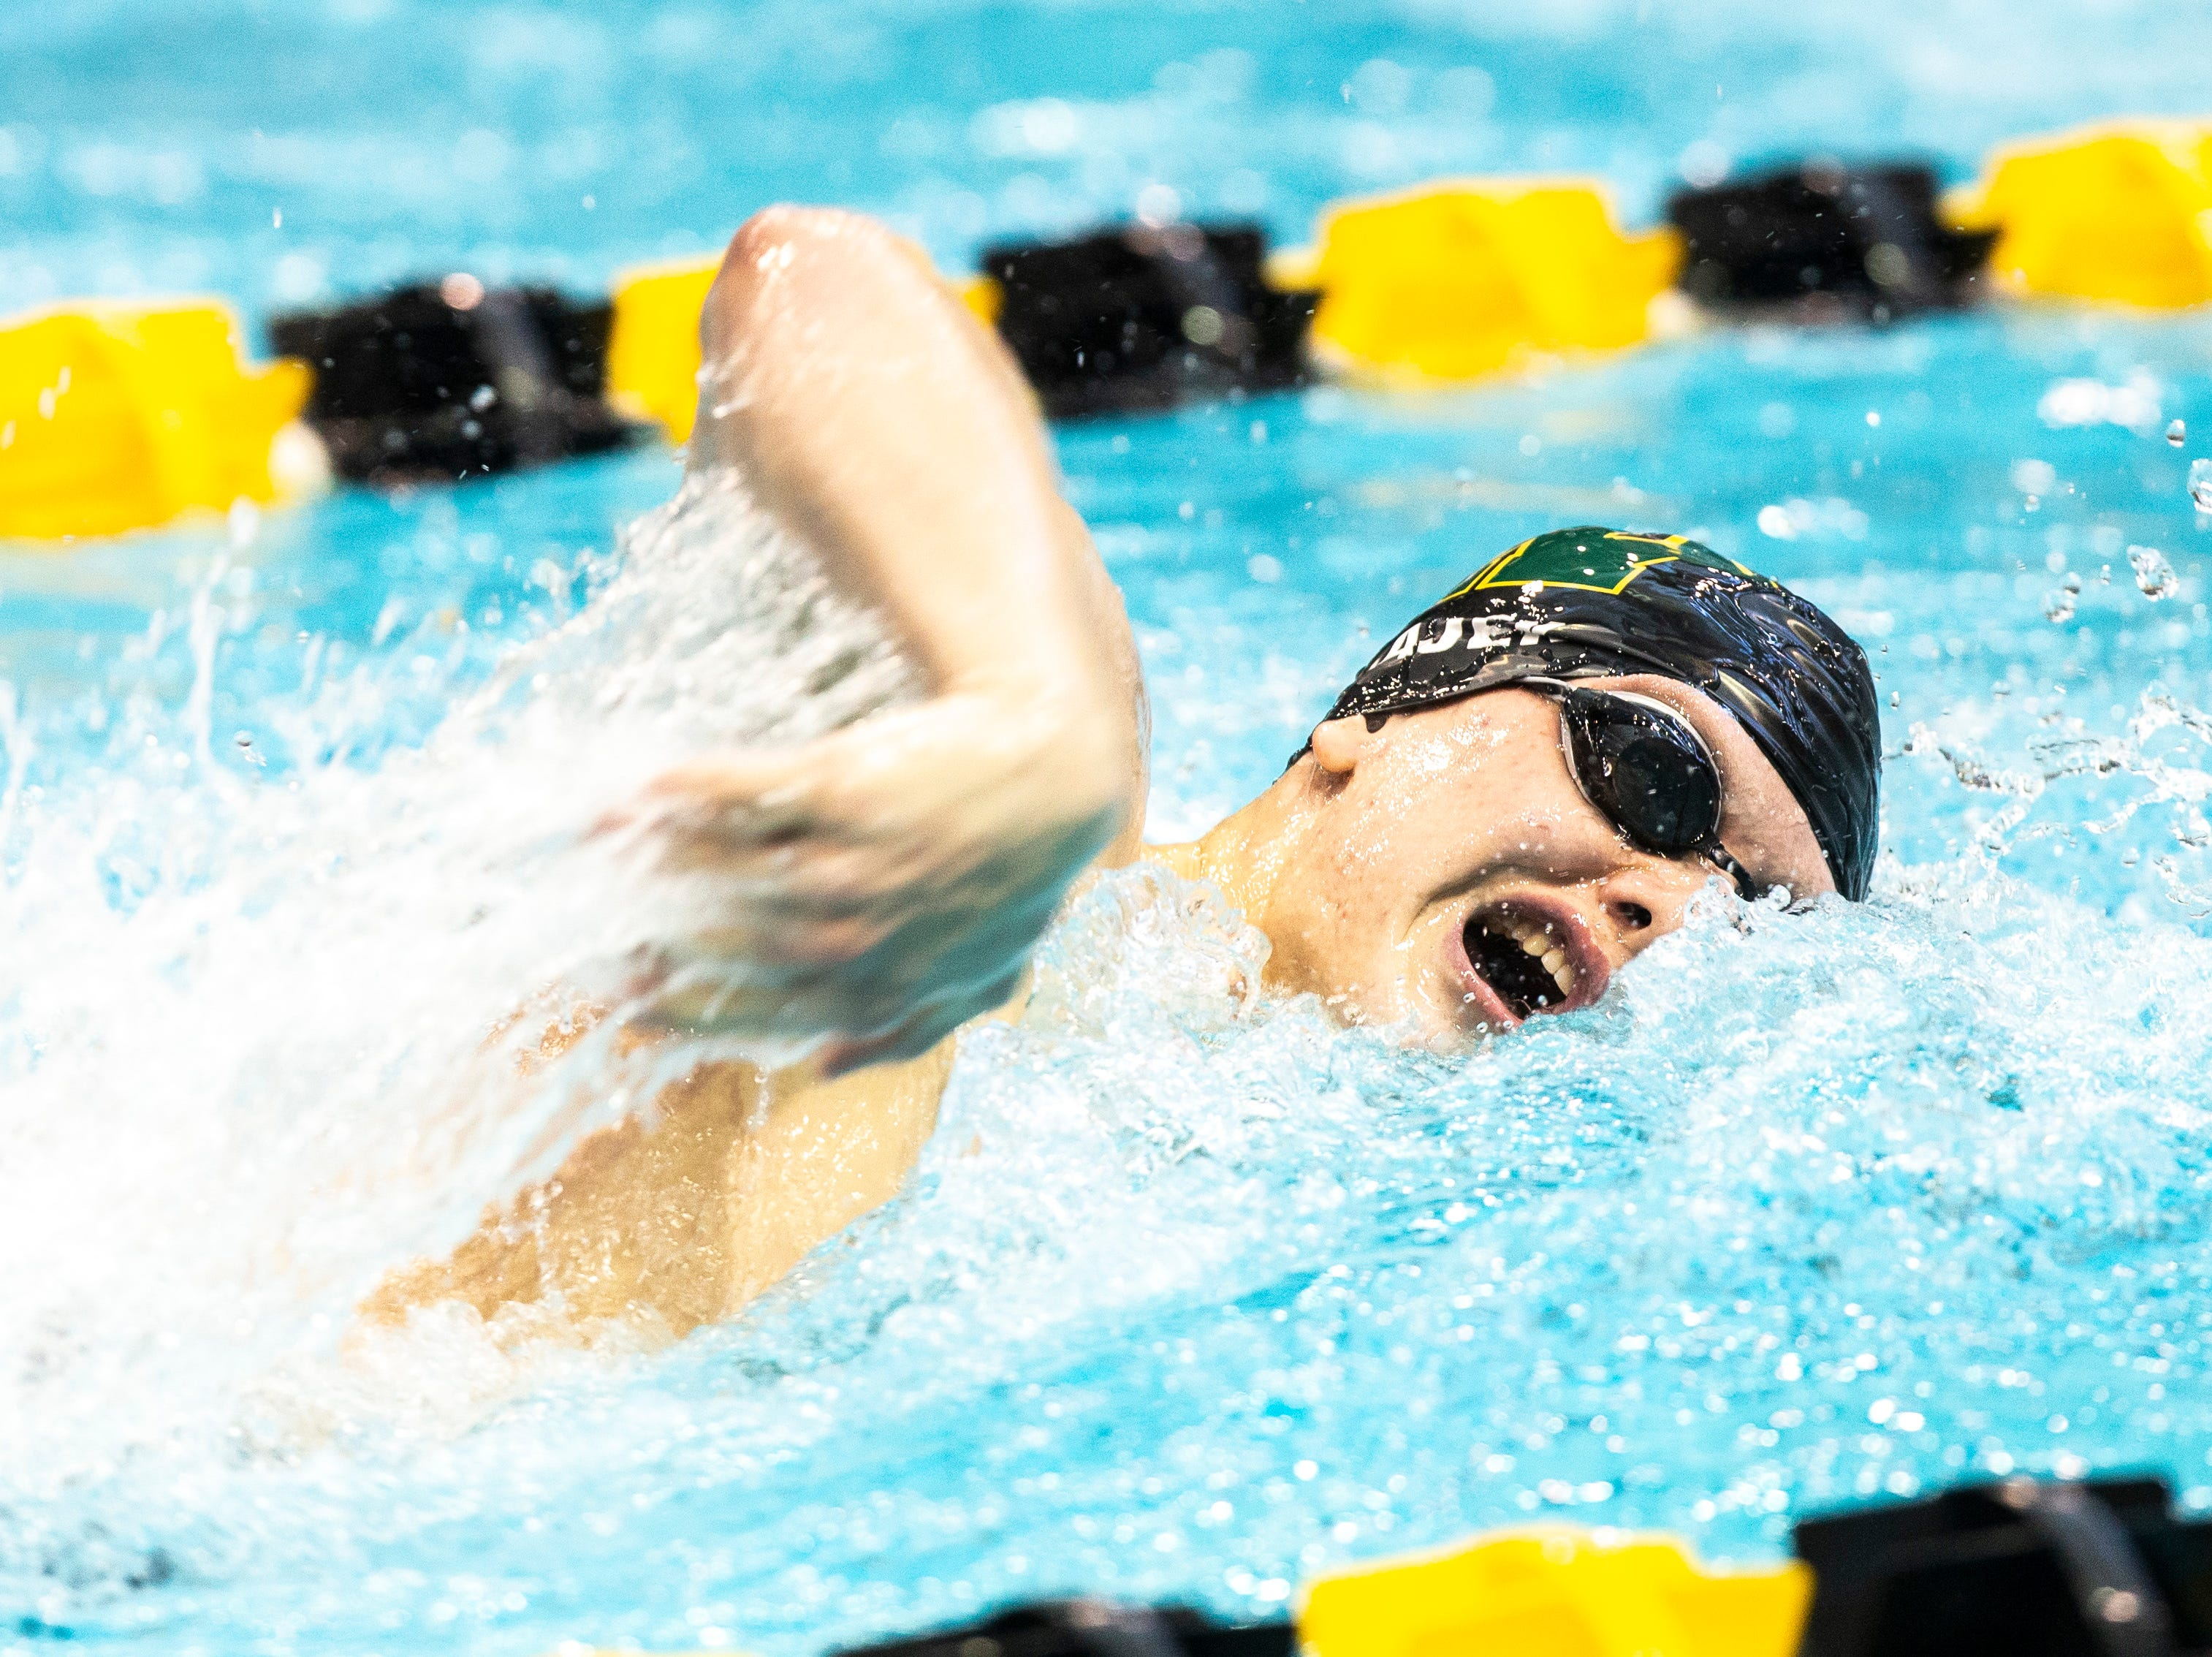 Iowa City West junior Izaak Hajek competes in the 200 yard individual medley during the Iowa boys' state swimming regional championship meet on Saturday, Feb. 9, 2019 at Campus Recreation and Wellness Center on the University of Iowa campus in Iowa City, Iowa. Hajek finished fifth overall, with a time of 1:55.52.